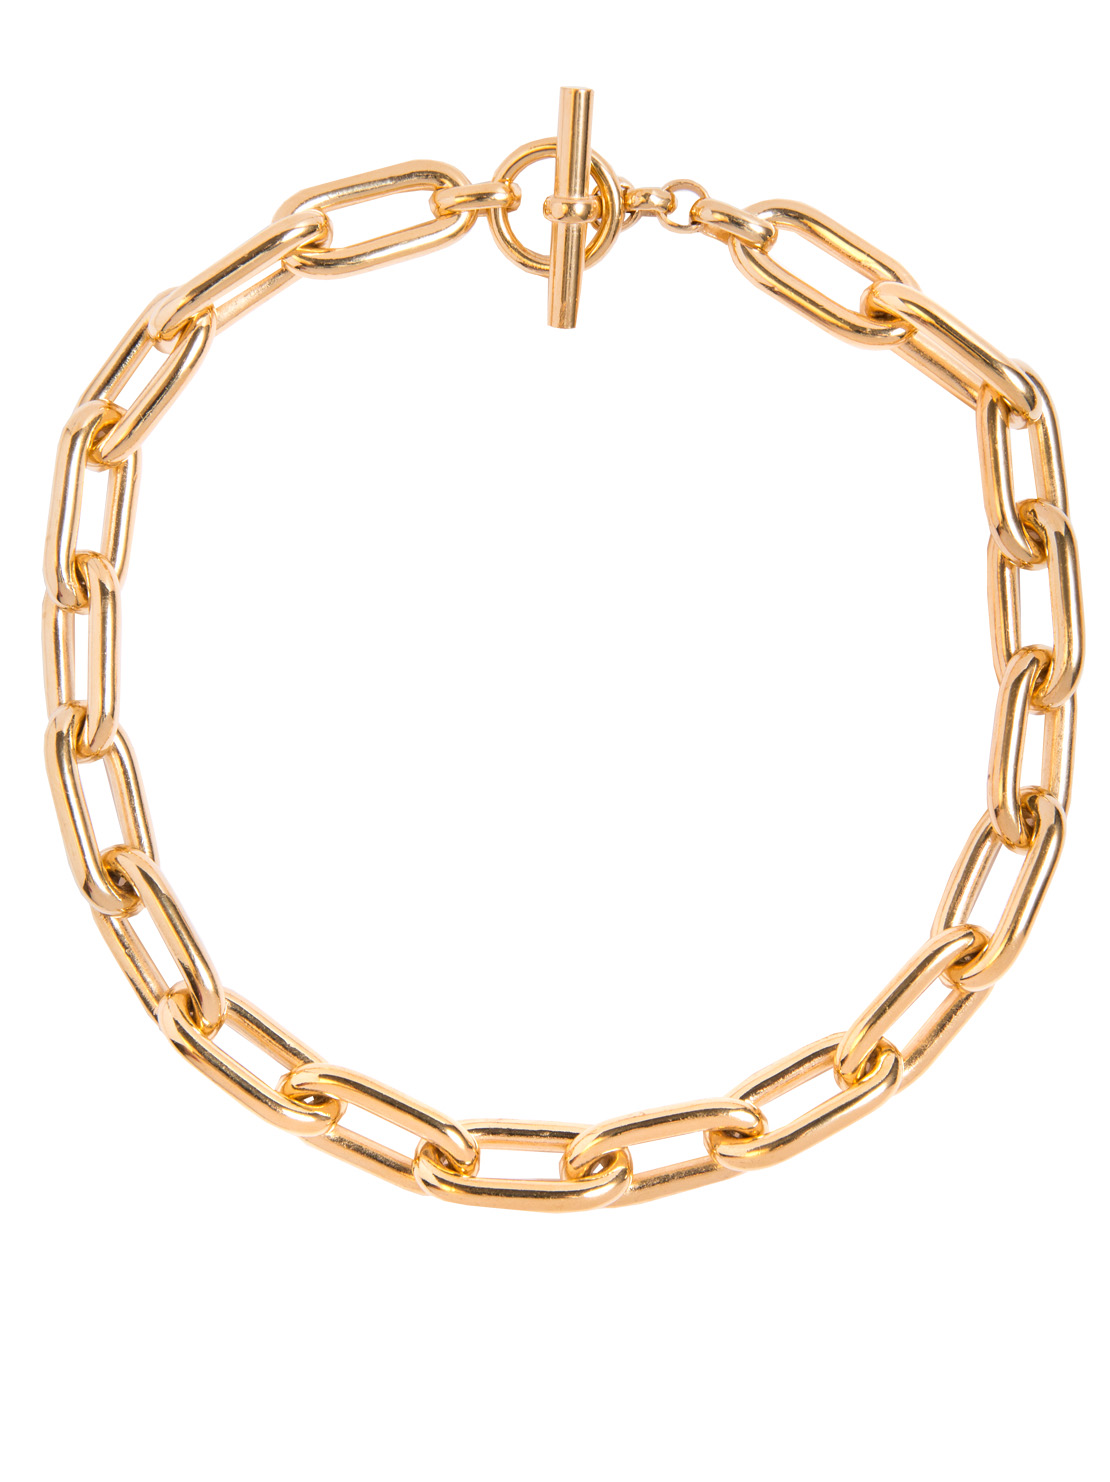 4f067123b26 Large Oval Linked Necklace - Tilly Sveaas Jewellery